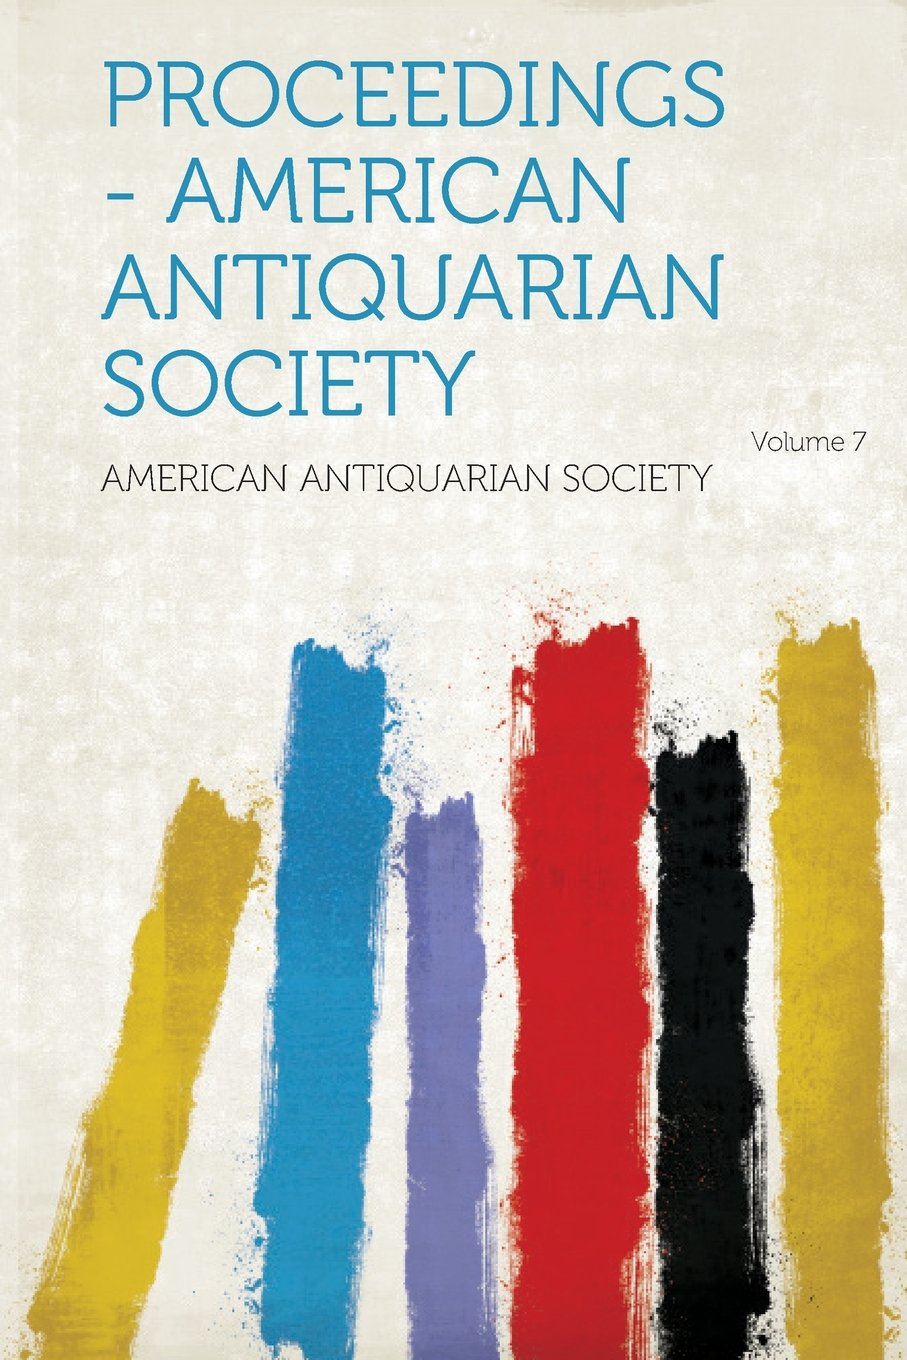 Download Proceedings - American Antiquarian Society Volume 7 PDF